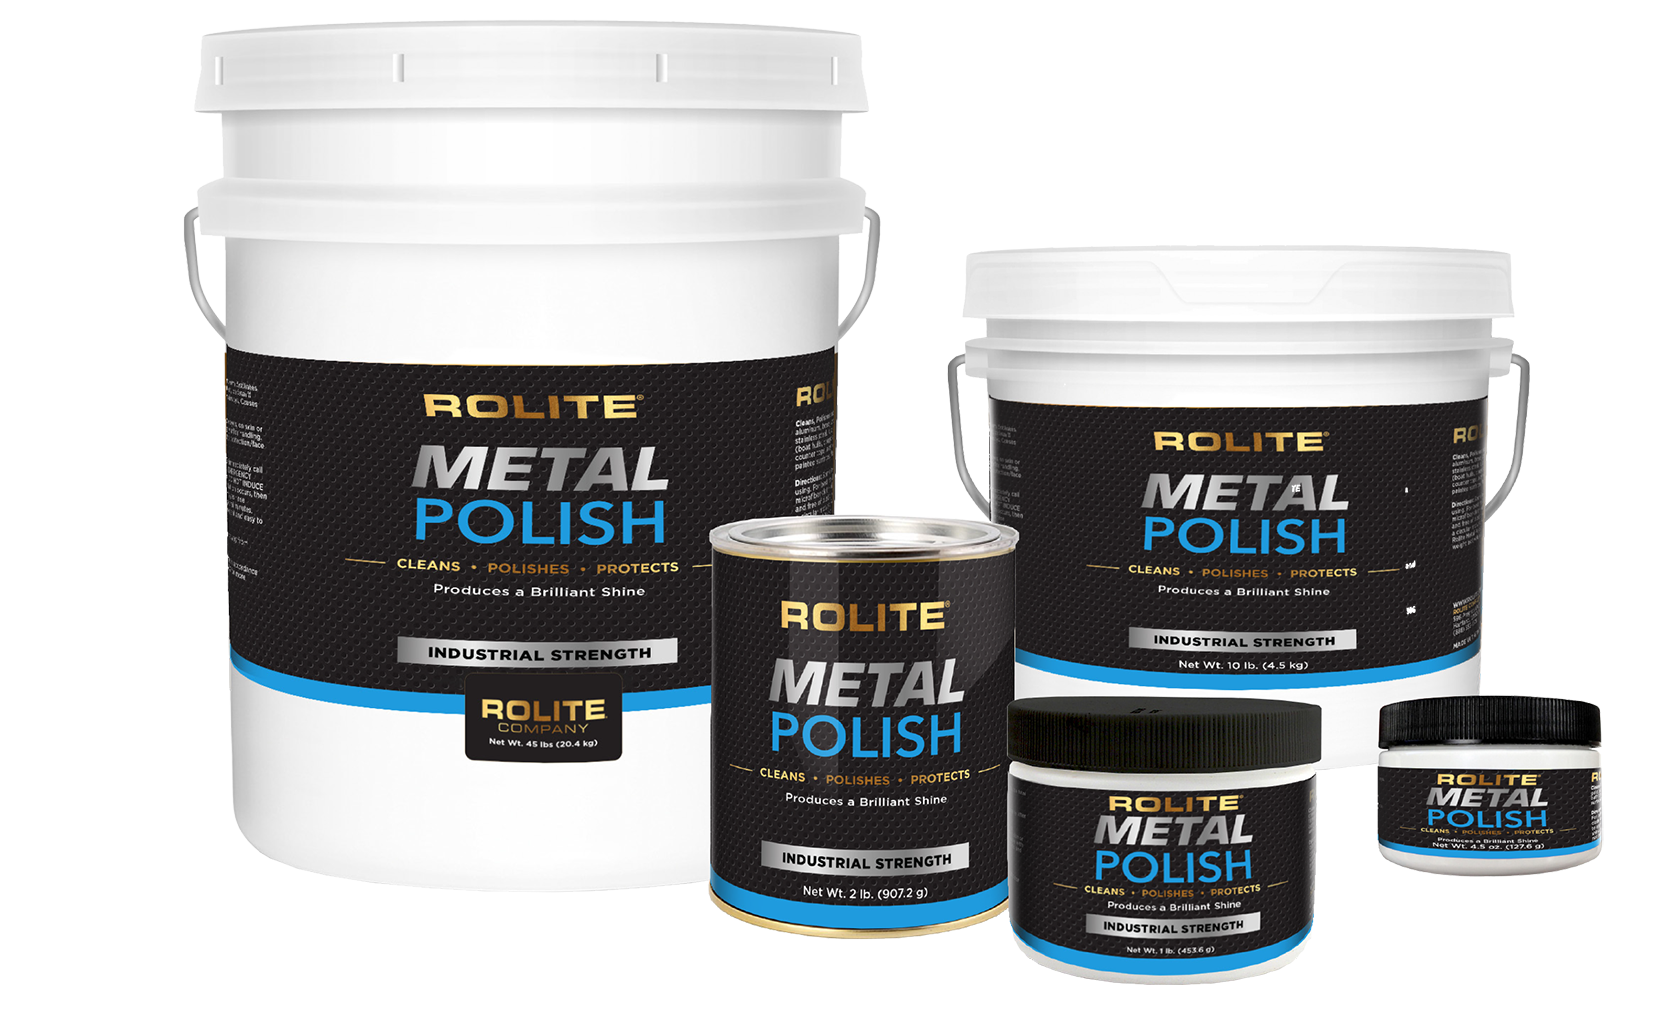 Rolite Metal Polish